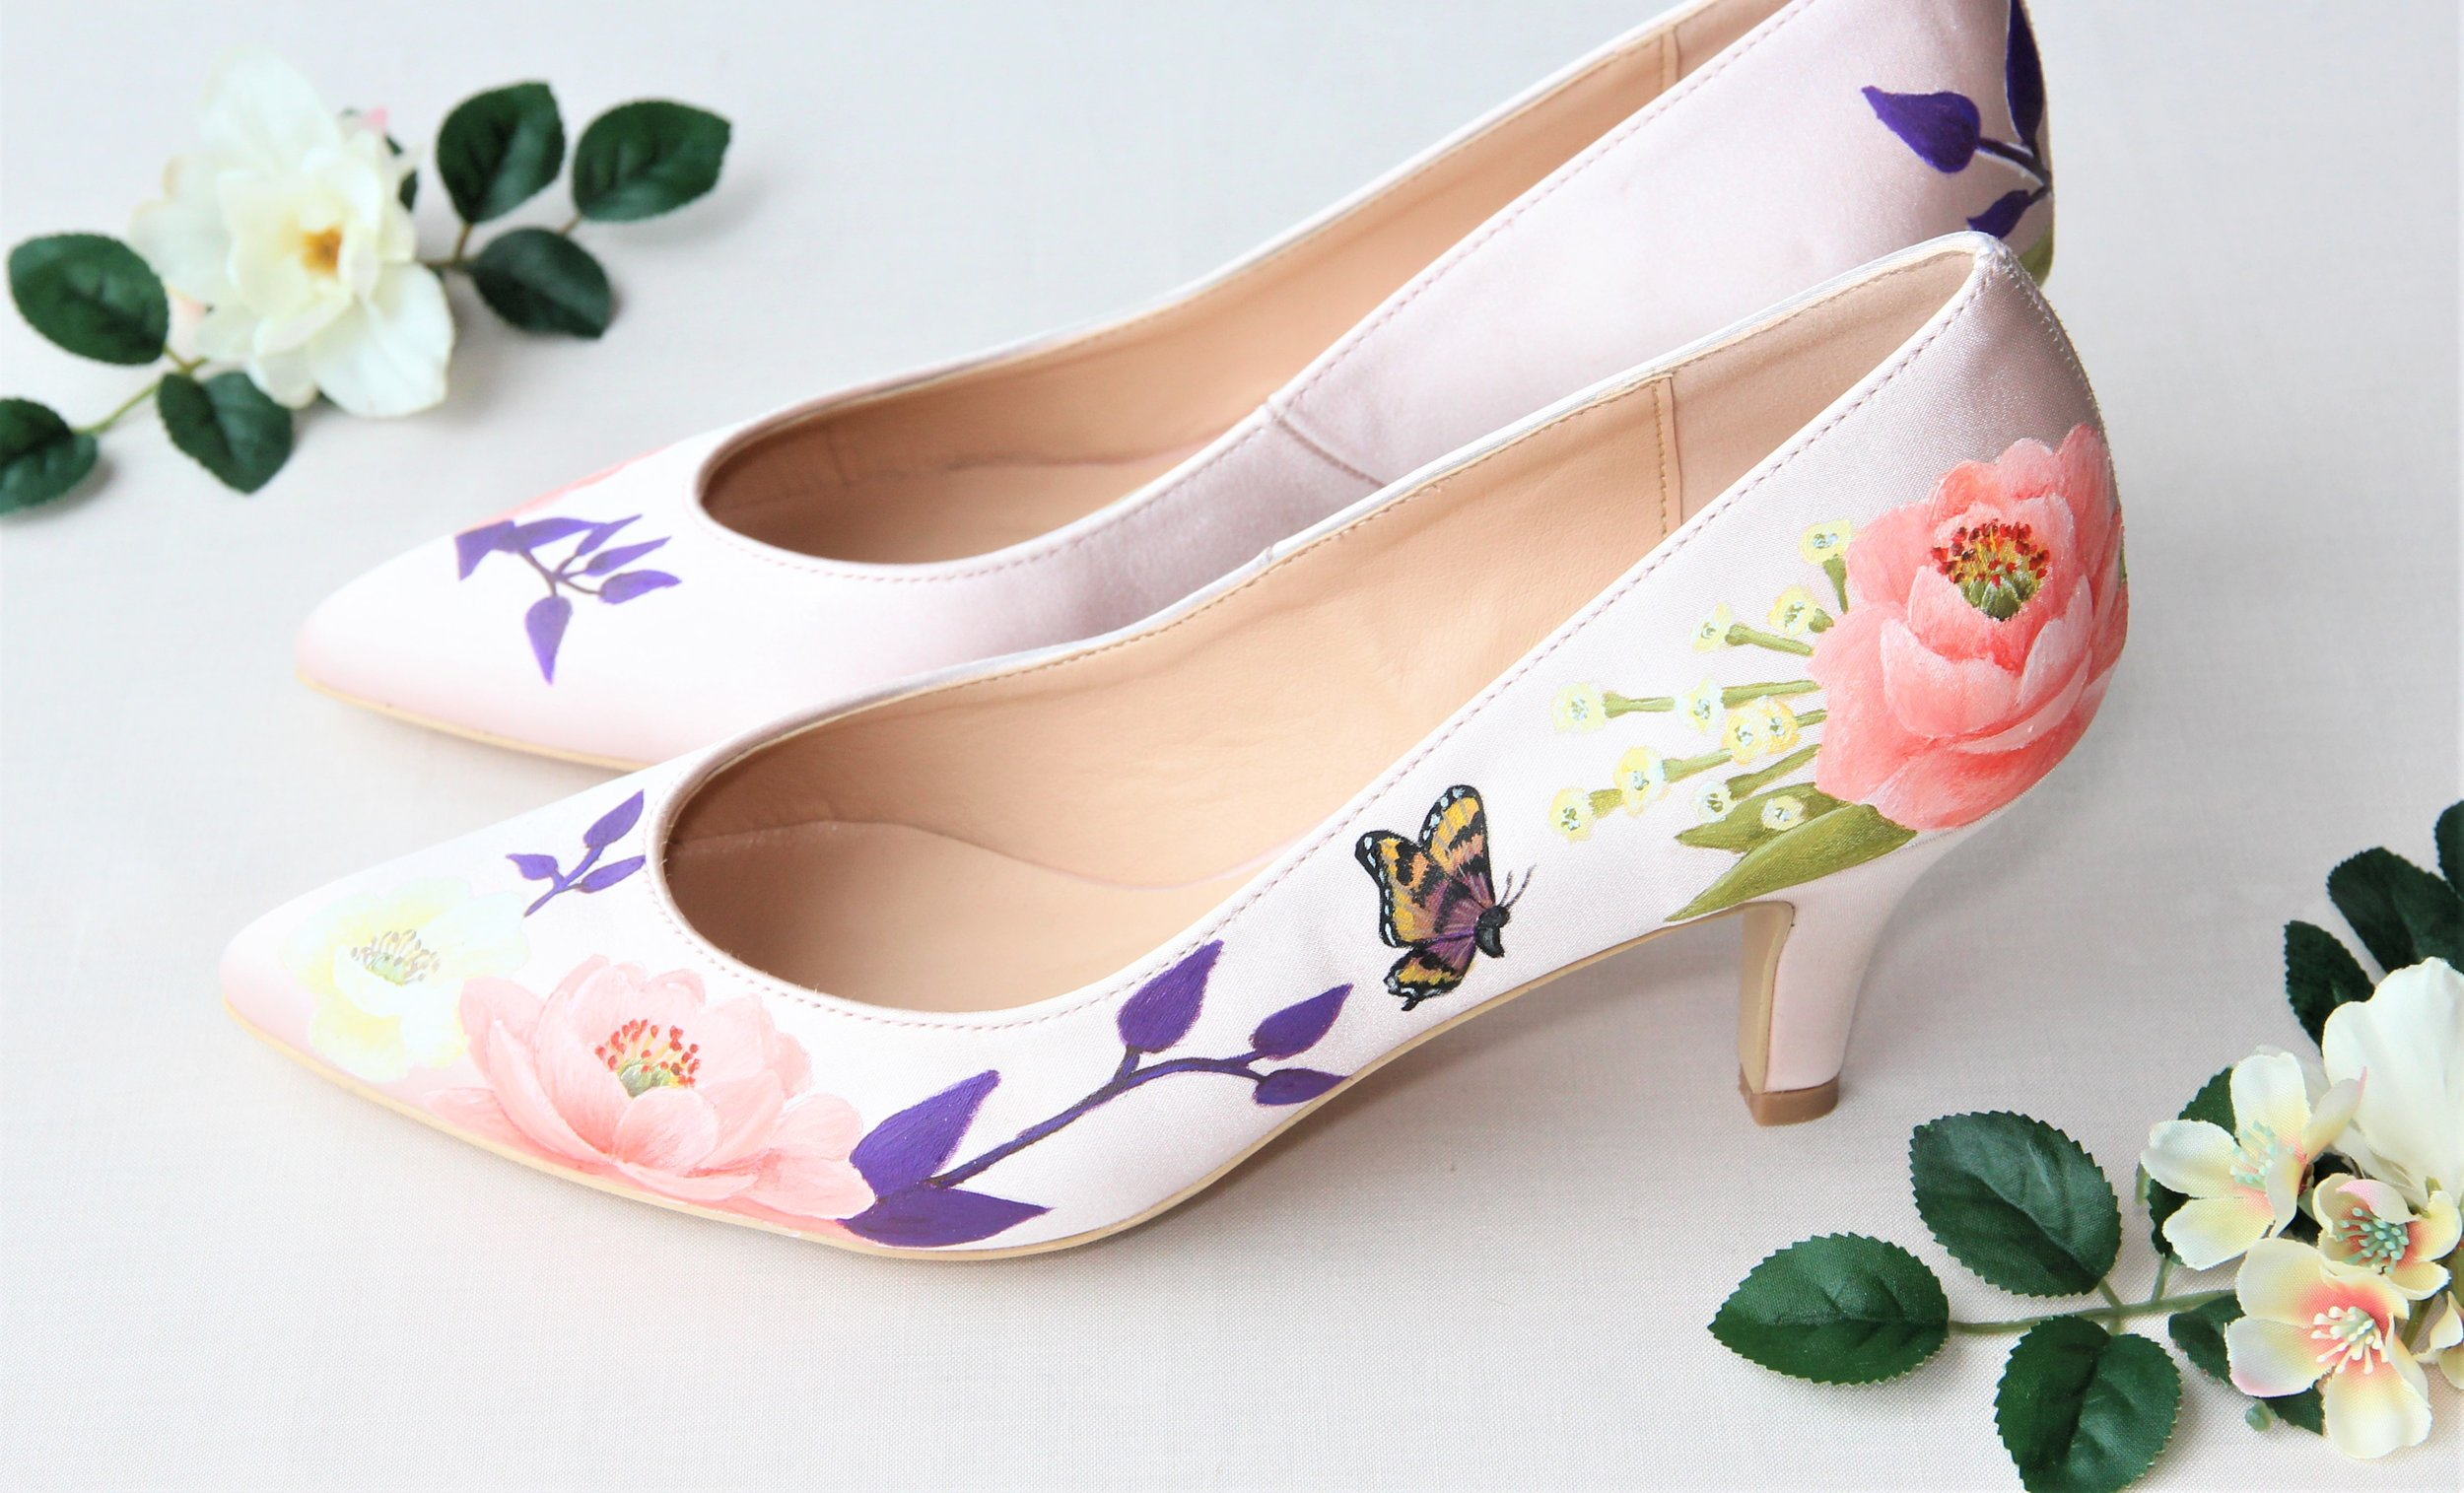 Blush Satin wedding shoes with butterfly print